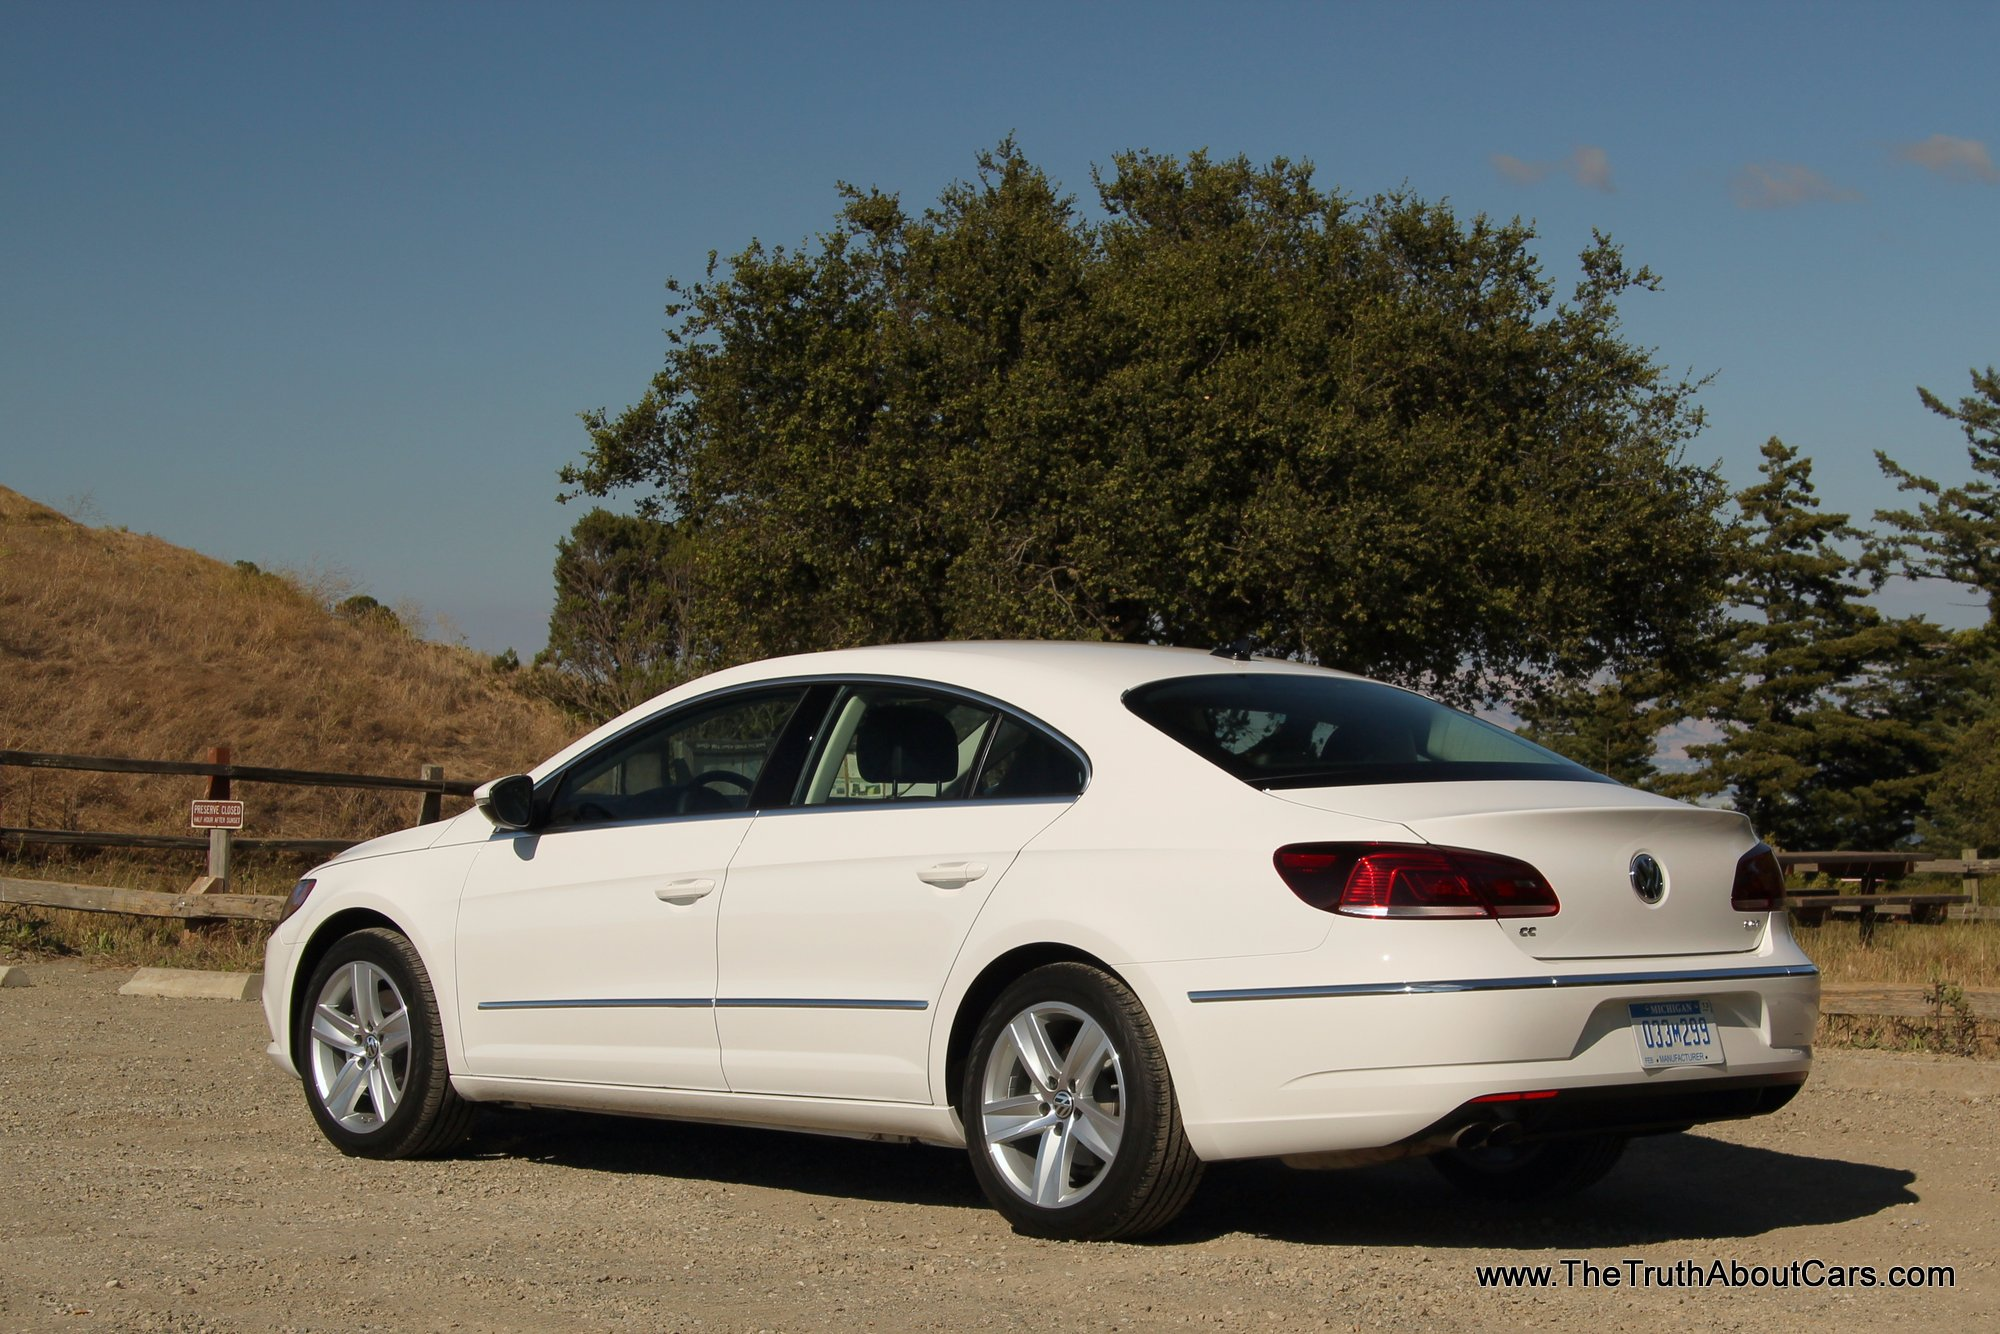 Review: 2013 Volkswagen CC - The Truth About Cars